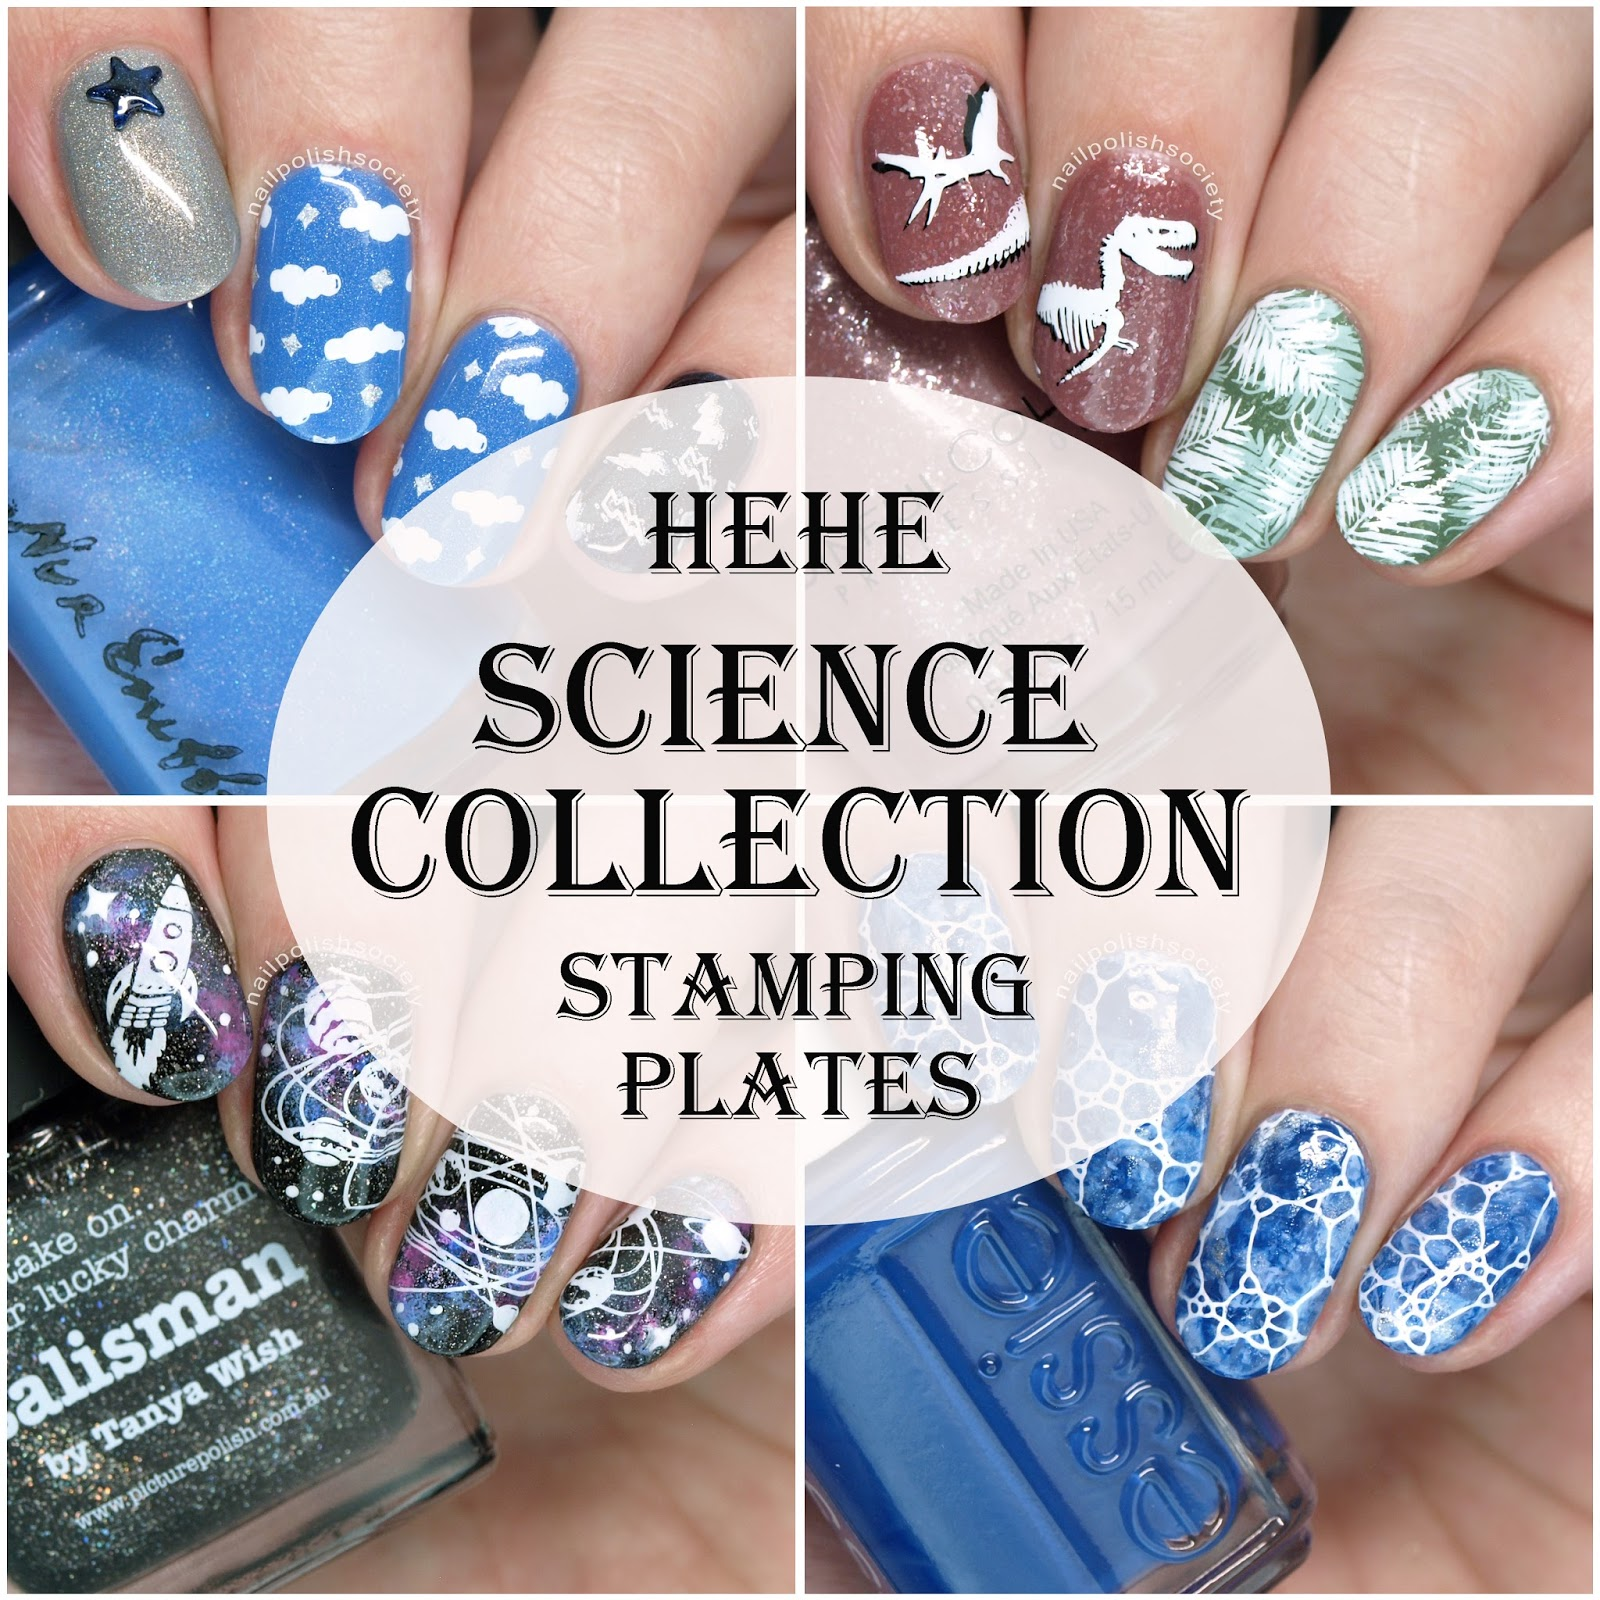 A Weeks Back I Reviewed Some New Plus Size Hehe Stamping Plates And As Promised Am With Their Science Collection When Saw This